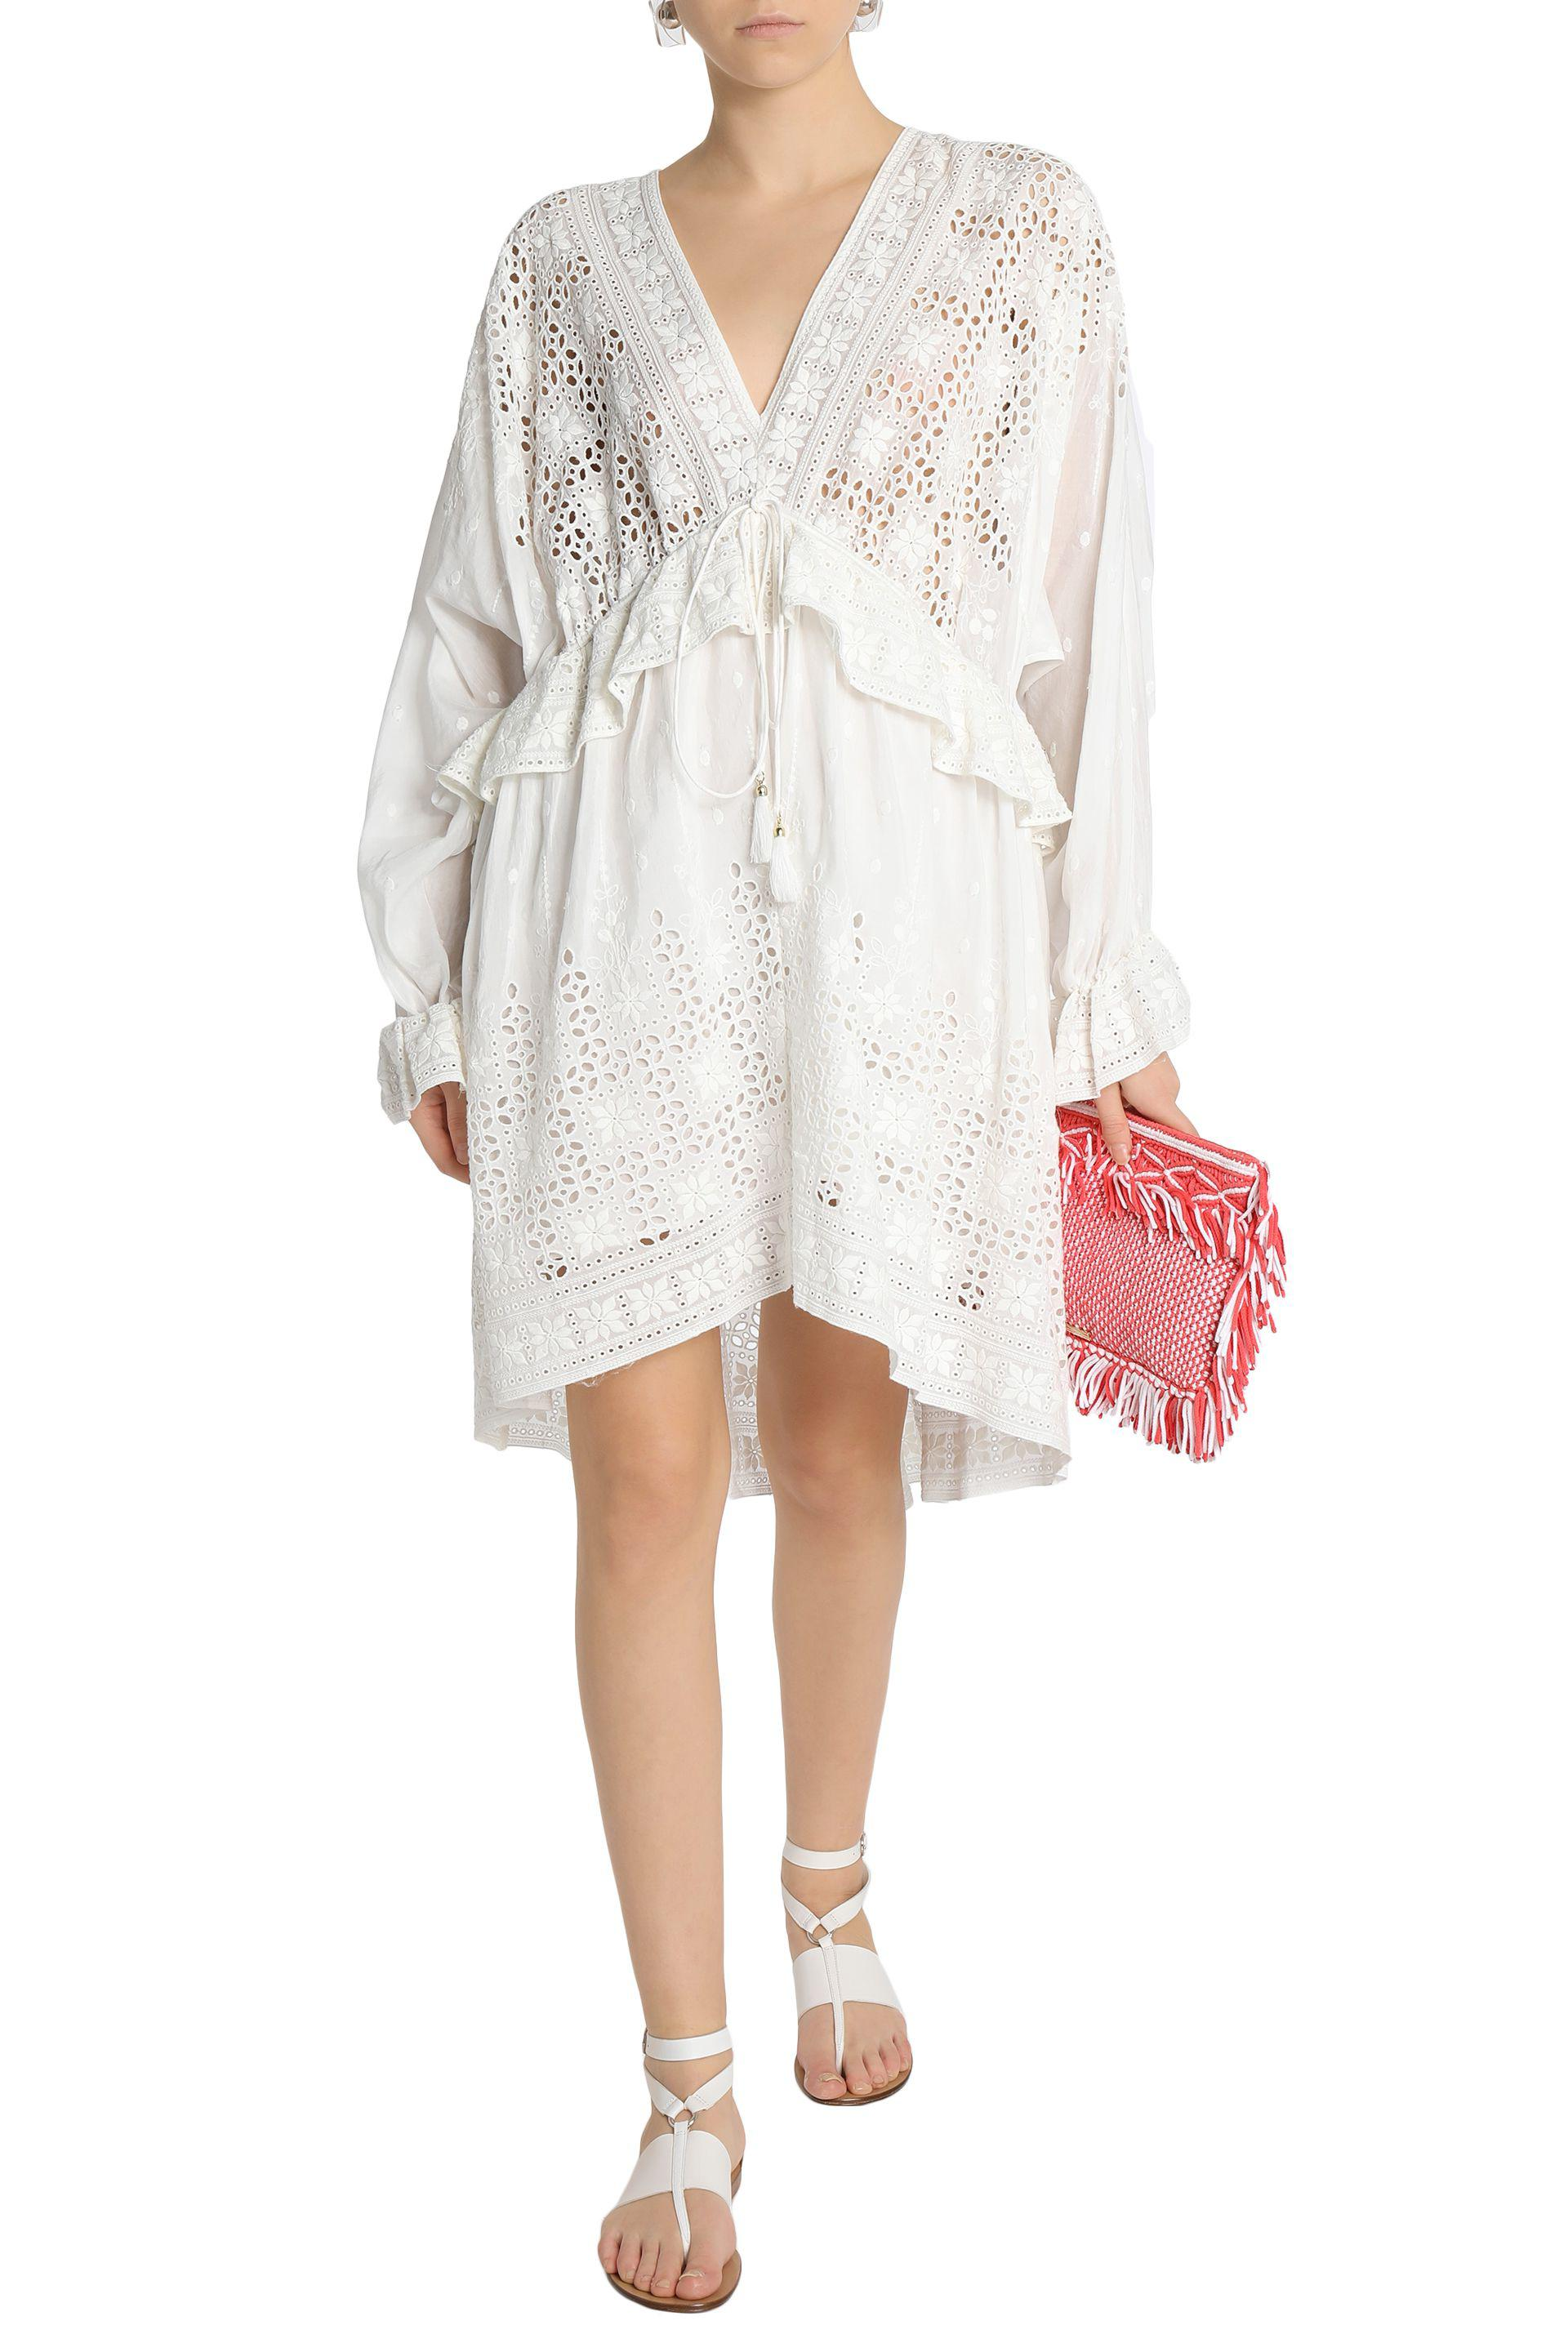 Zimmermann Ruffled Broderie Anglaise Cotton And Silk-blend Dress in White